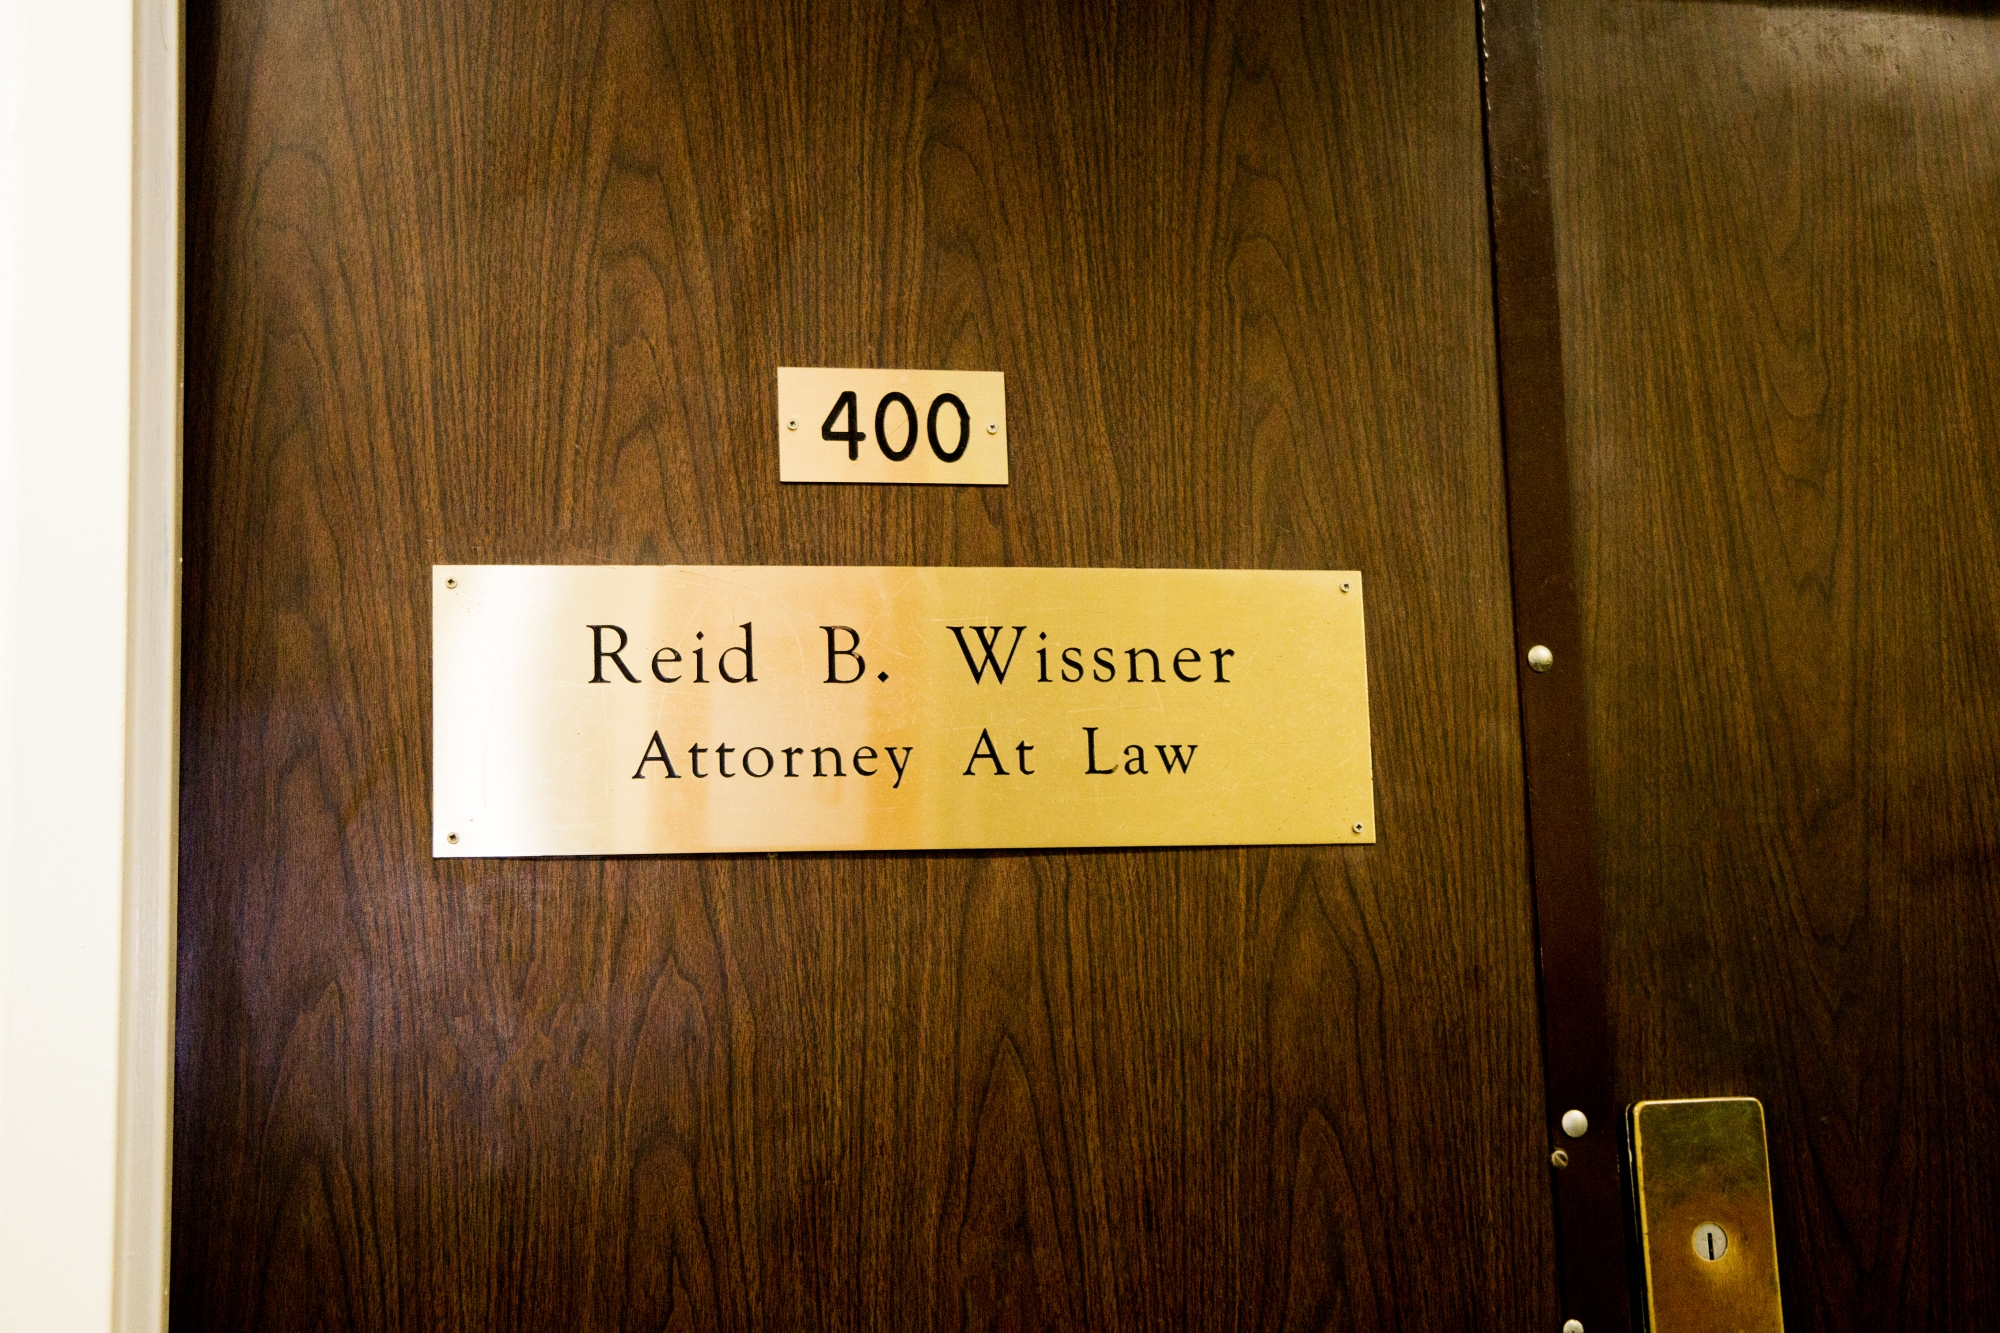 Reid B. Wissner Law Offices in Suite 400 at 325 Broadway in NYC